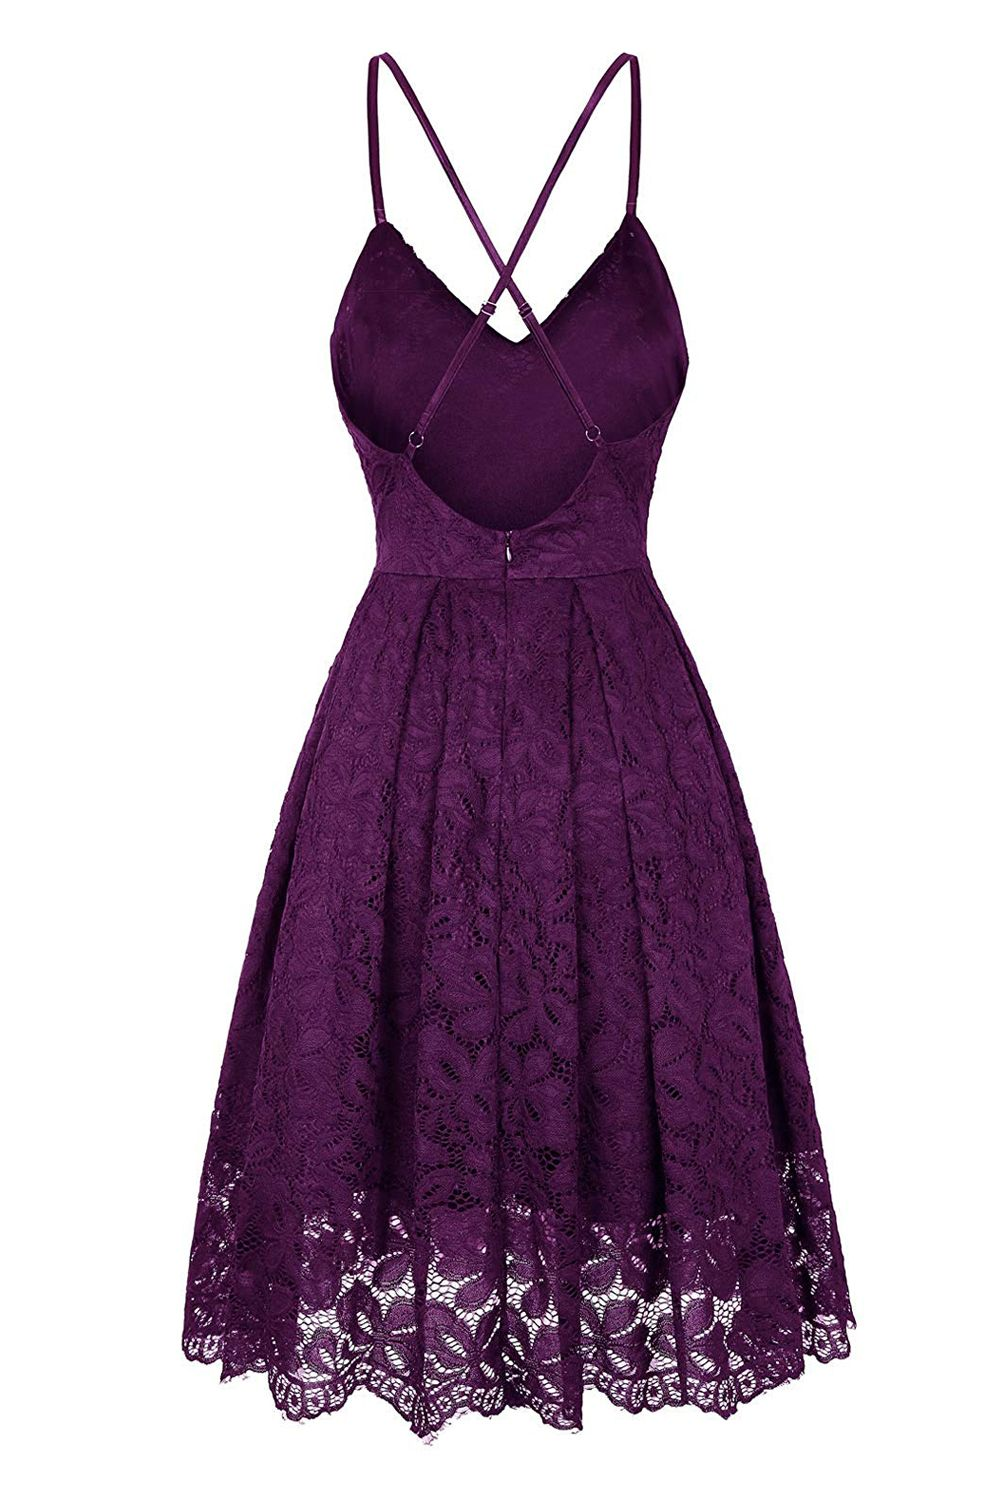 Purple Floral V Neck A-line Backless Lace Cocktail Dress #backlesscocktaildress